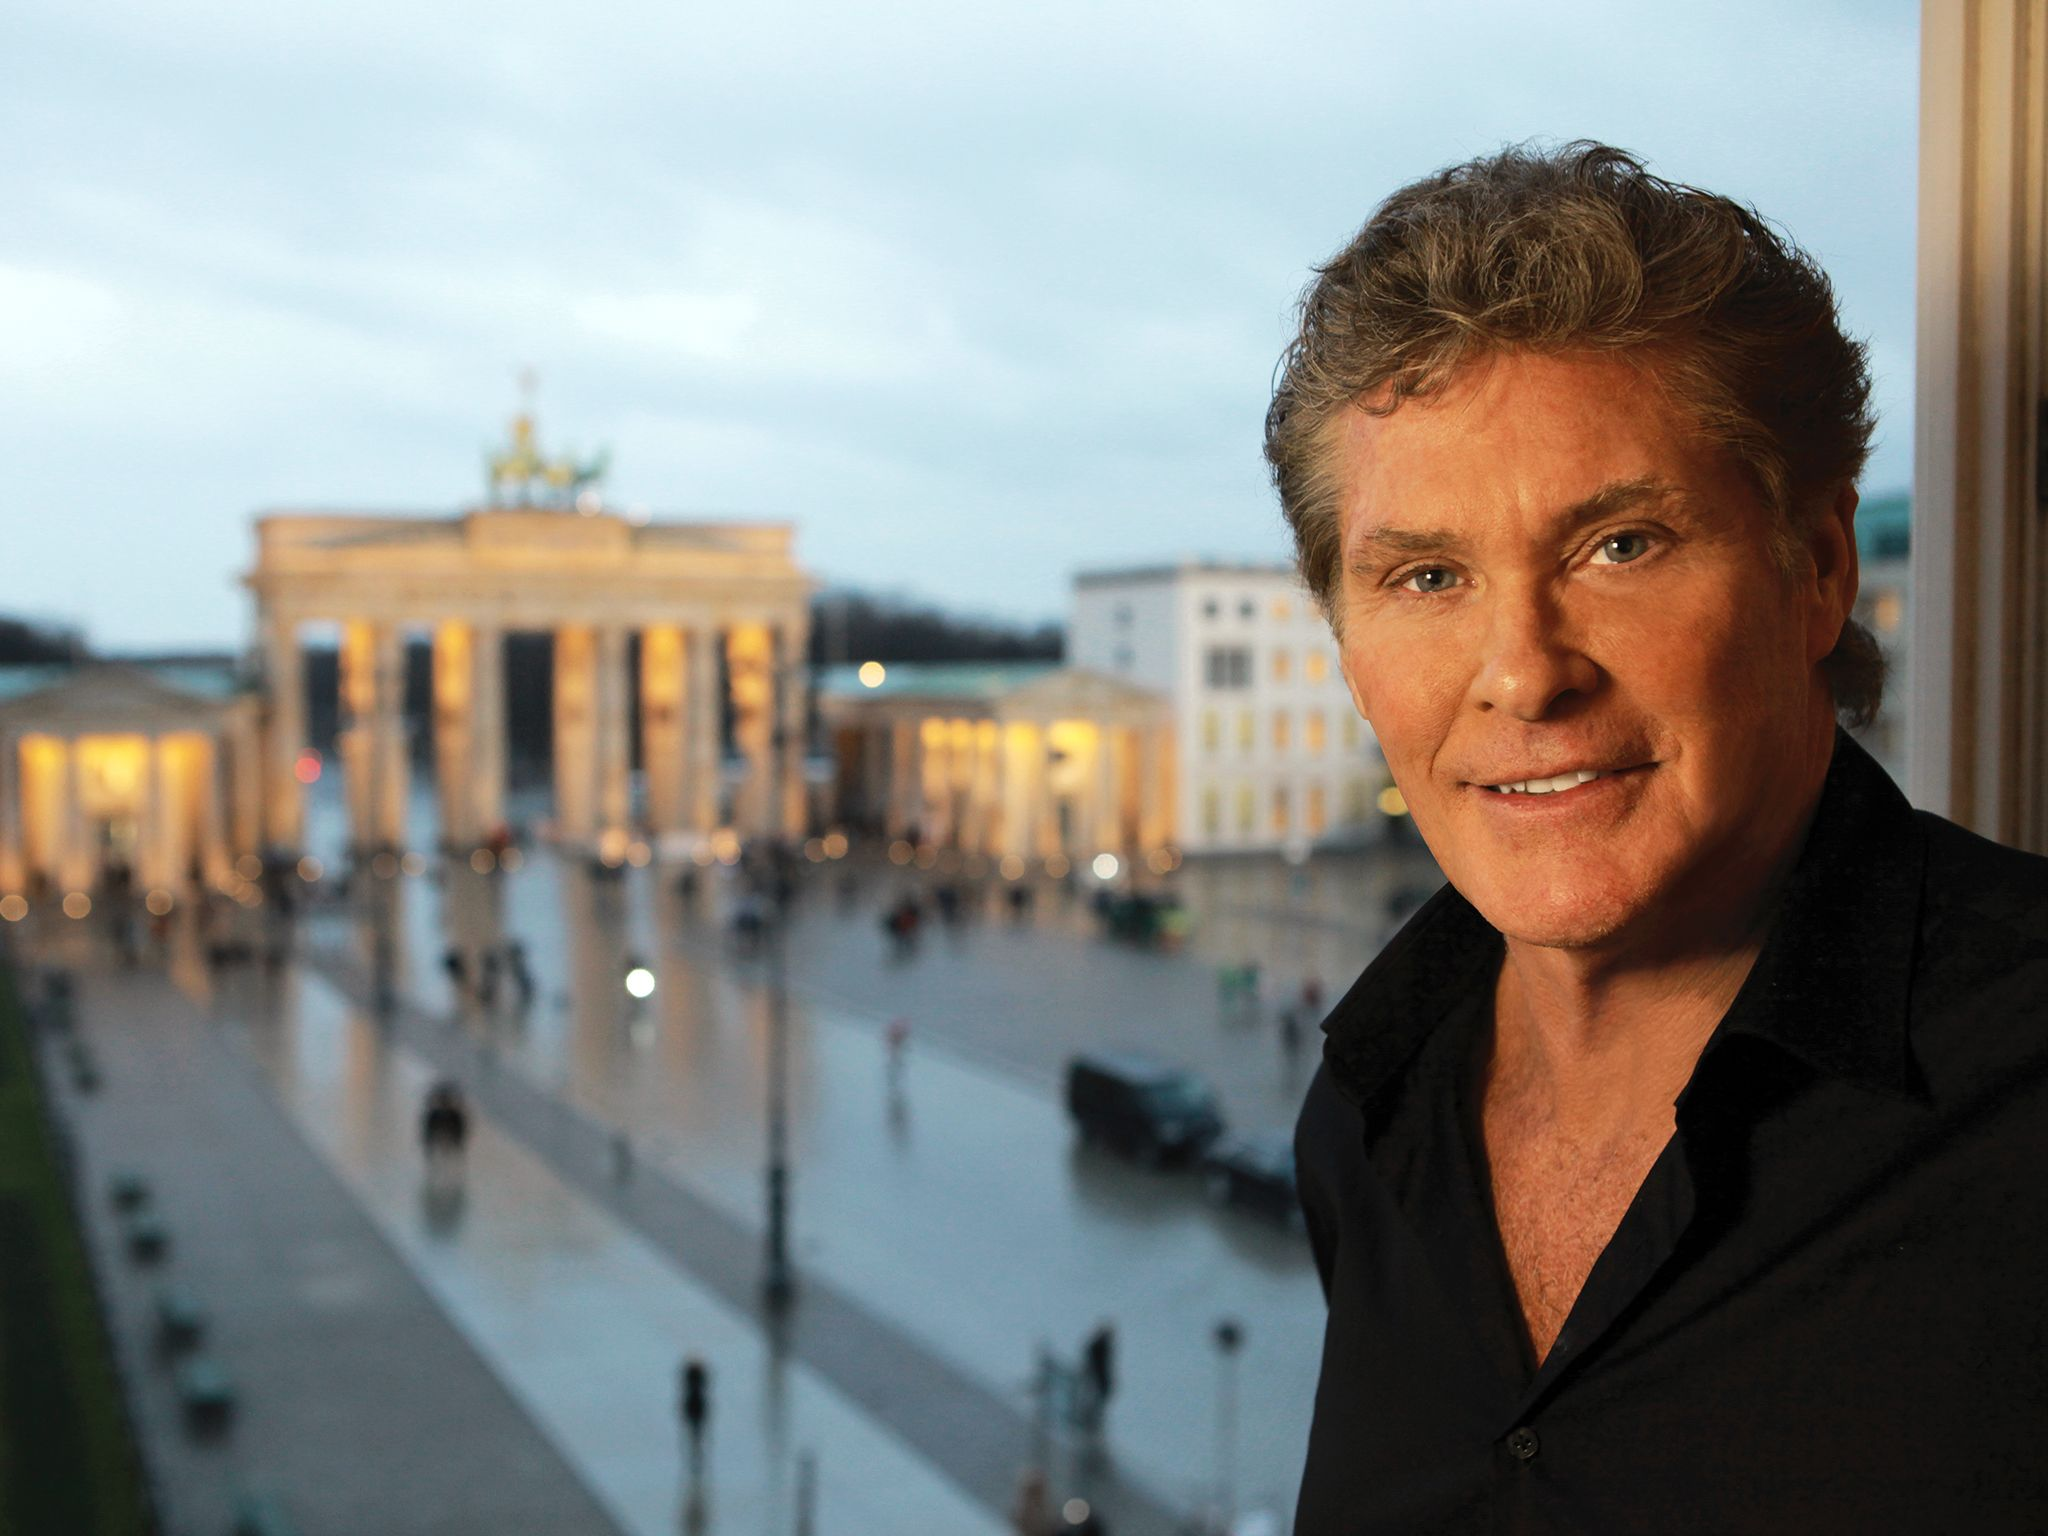 Berlin, Germany: David Hasselhoff in his hotel room overlooking the Brandenburg Gate. This image ... [Photo of the day - نوامبر 2014]